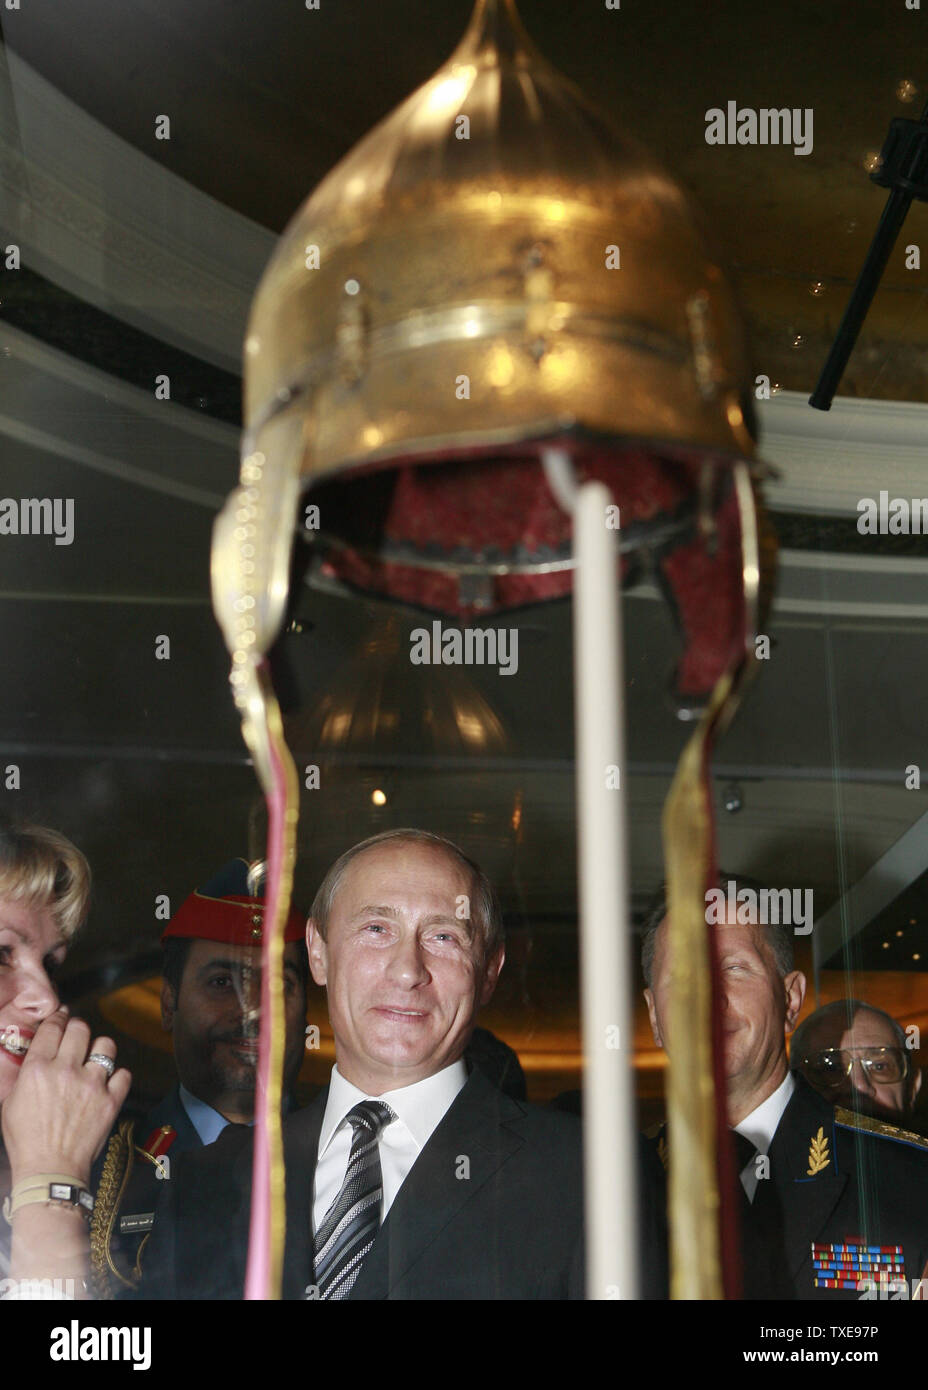 Russian President Vladimir Putin (C) visits the Arsenal of the Russian Tsars exhibition in the Emirates Palace Hotel in Abu Dhabi during his visit to United Arab Emirates on September 10, 2007. (UPI Photo/Anatoli Zhdanov) Stock Photo